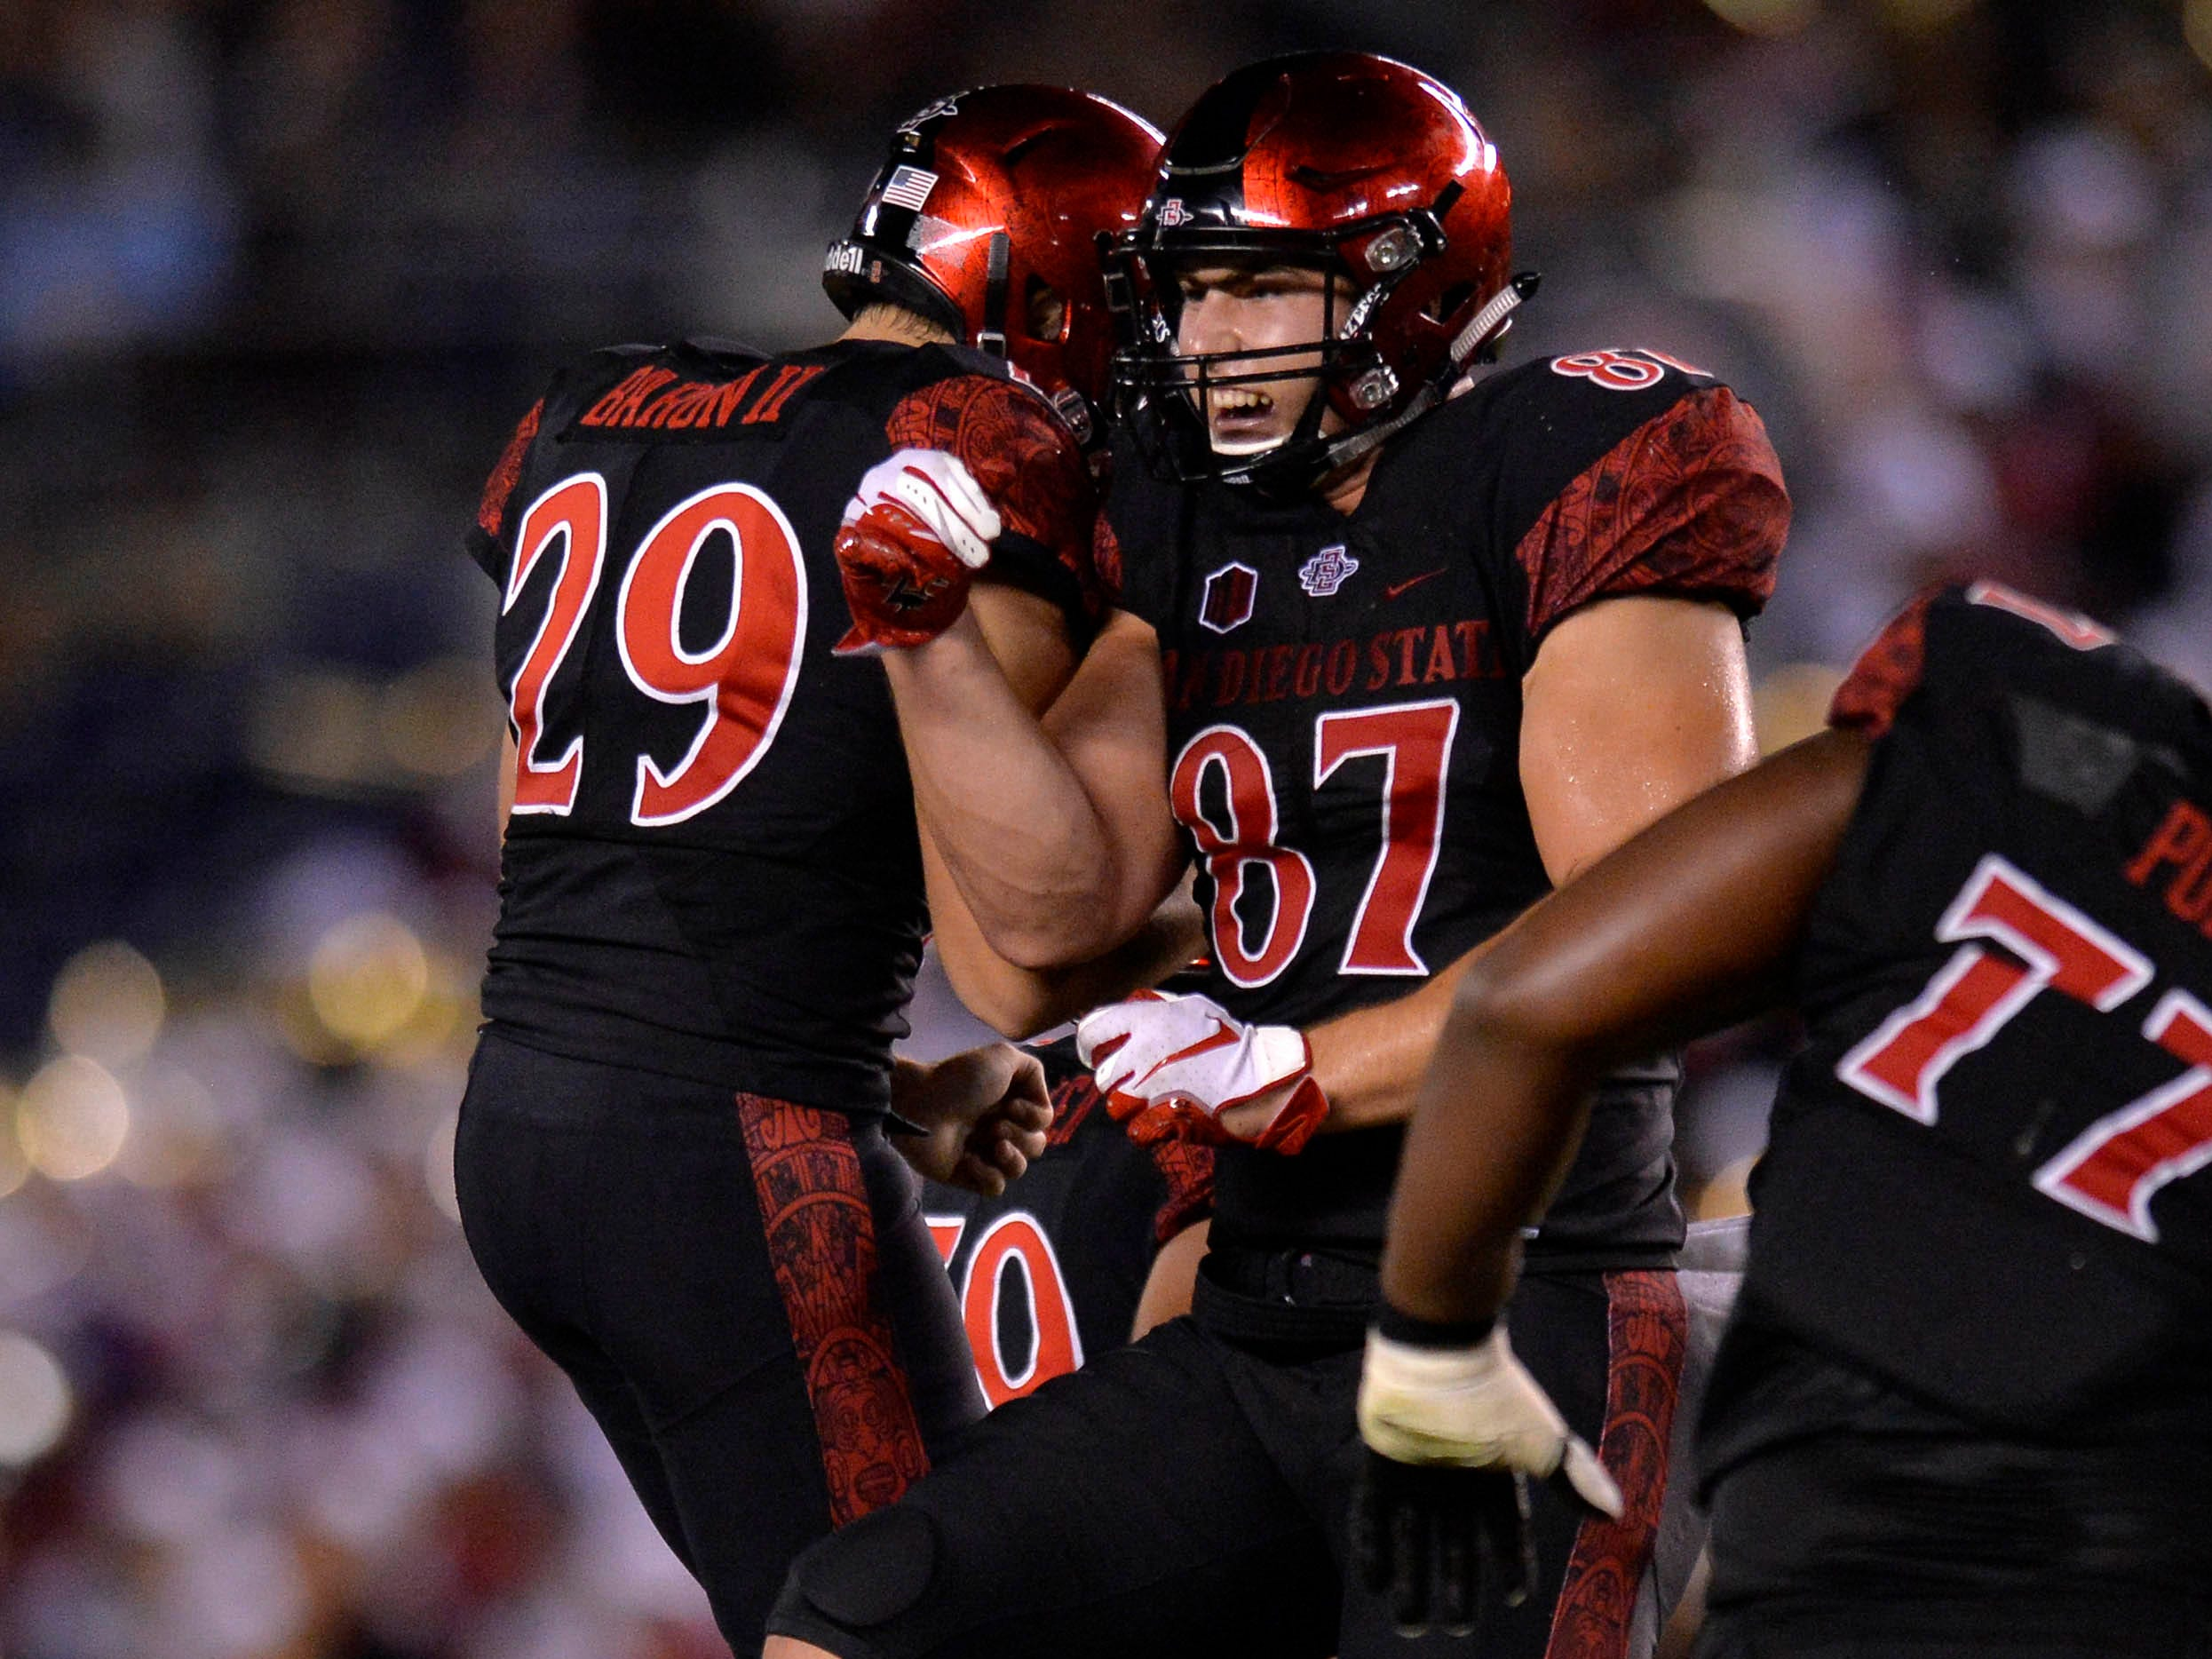 Sep 15, 2018; San Diego, CA, USA; San Diego State Aztecs place kicker John Baron II (29) and tight end Kahale Warring (87) celebrate after Baron II made a 54 yard field goal in the third quarter against the Arizona State Sun Devils at SDCCU Stadium. Mandatory Credit: Jake Roth-USA TODAY Sports